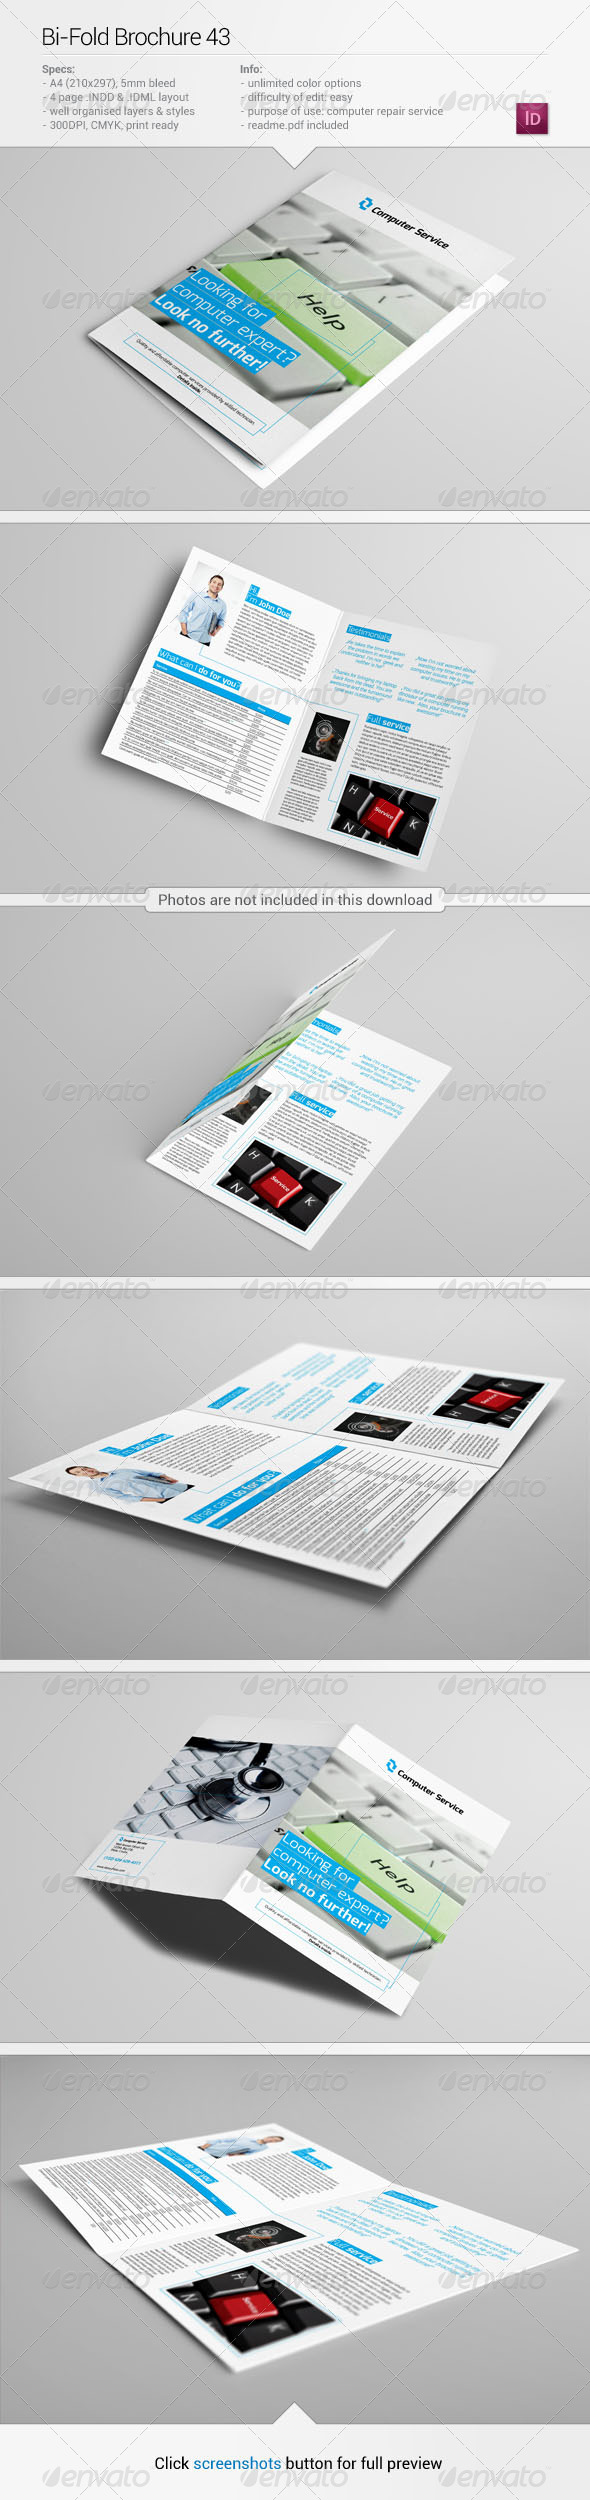 Bi fold brochure 43 informational brochures for Bi fold brochure template illustrator